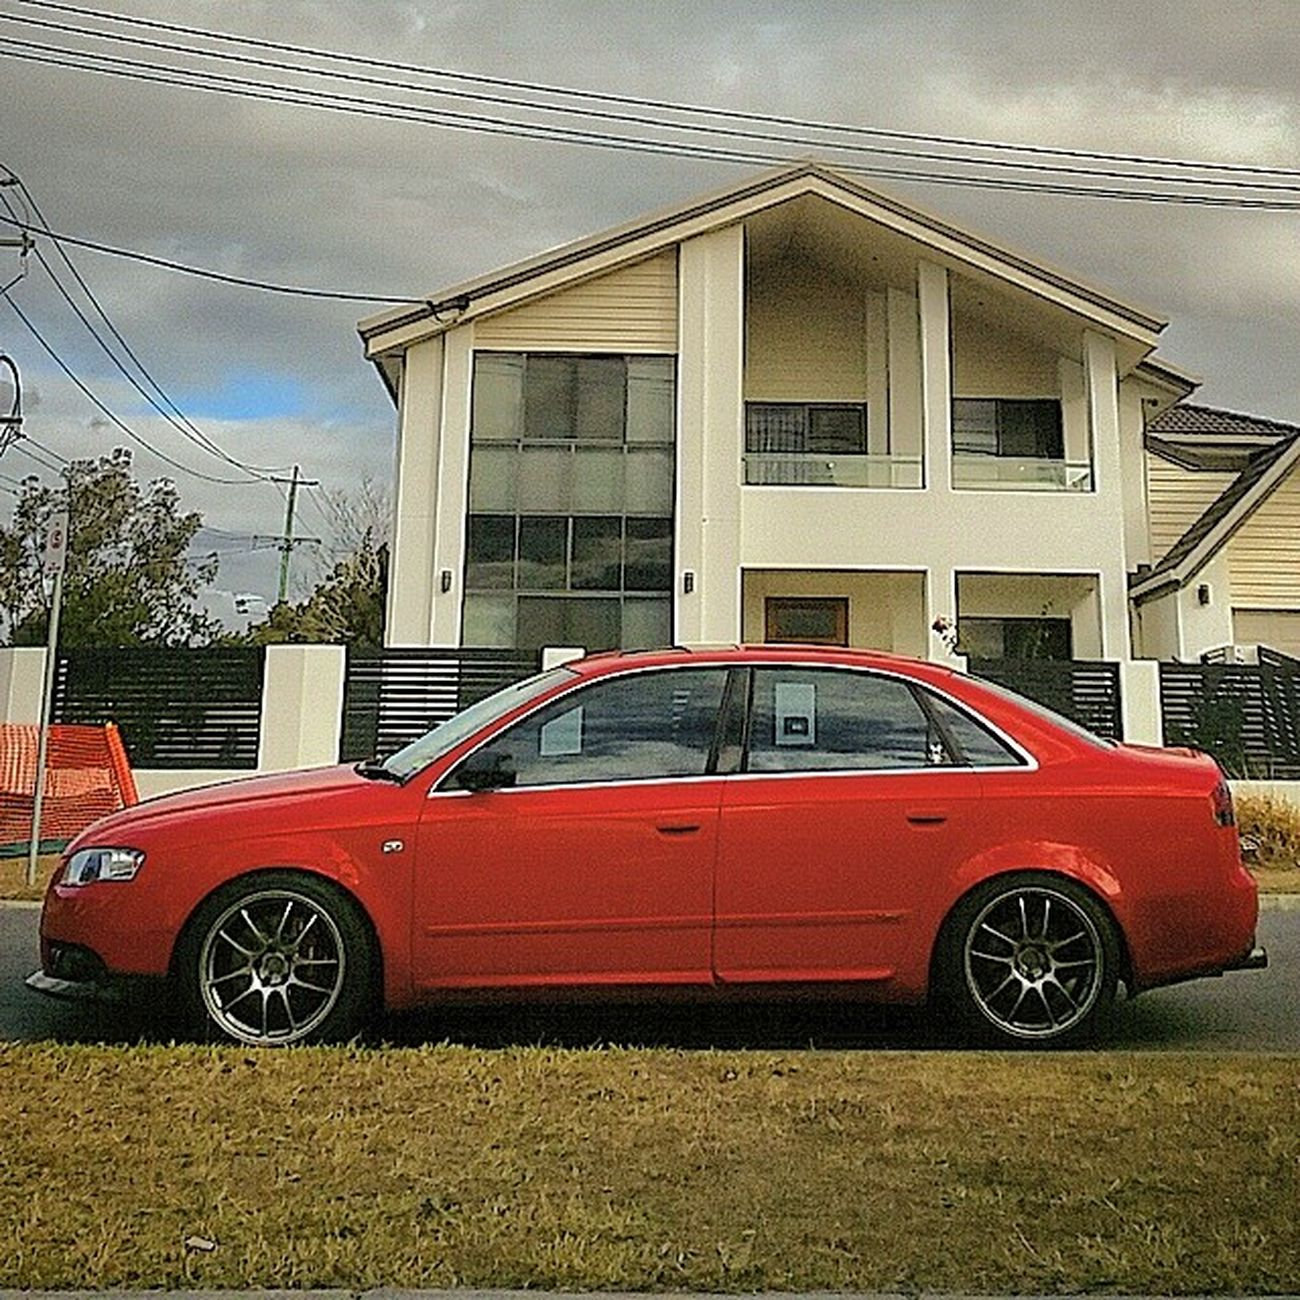 Audi Bavarian A4 Gdm sline quattro red manual 4door boost car COTD POTD instacar enkei APR stage2plus tuned